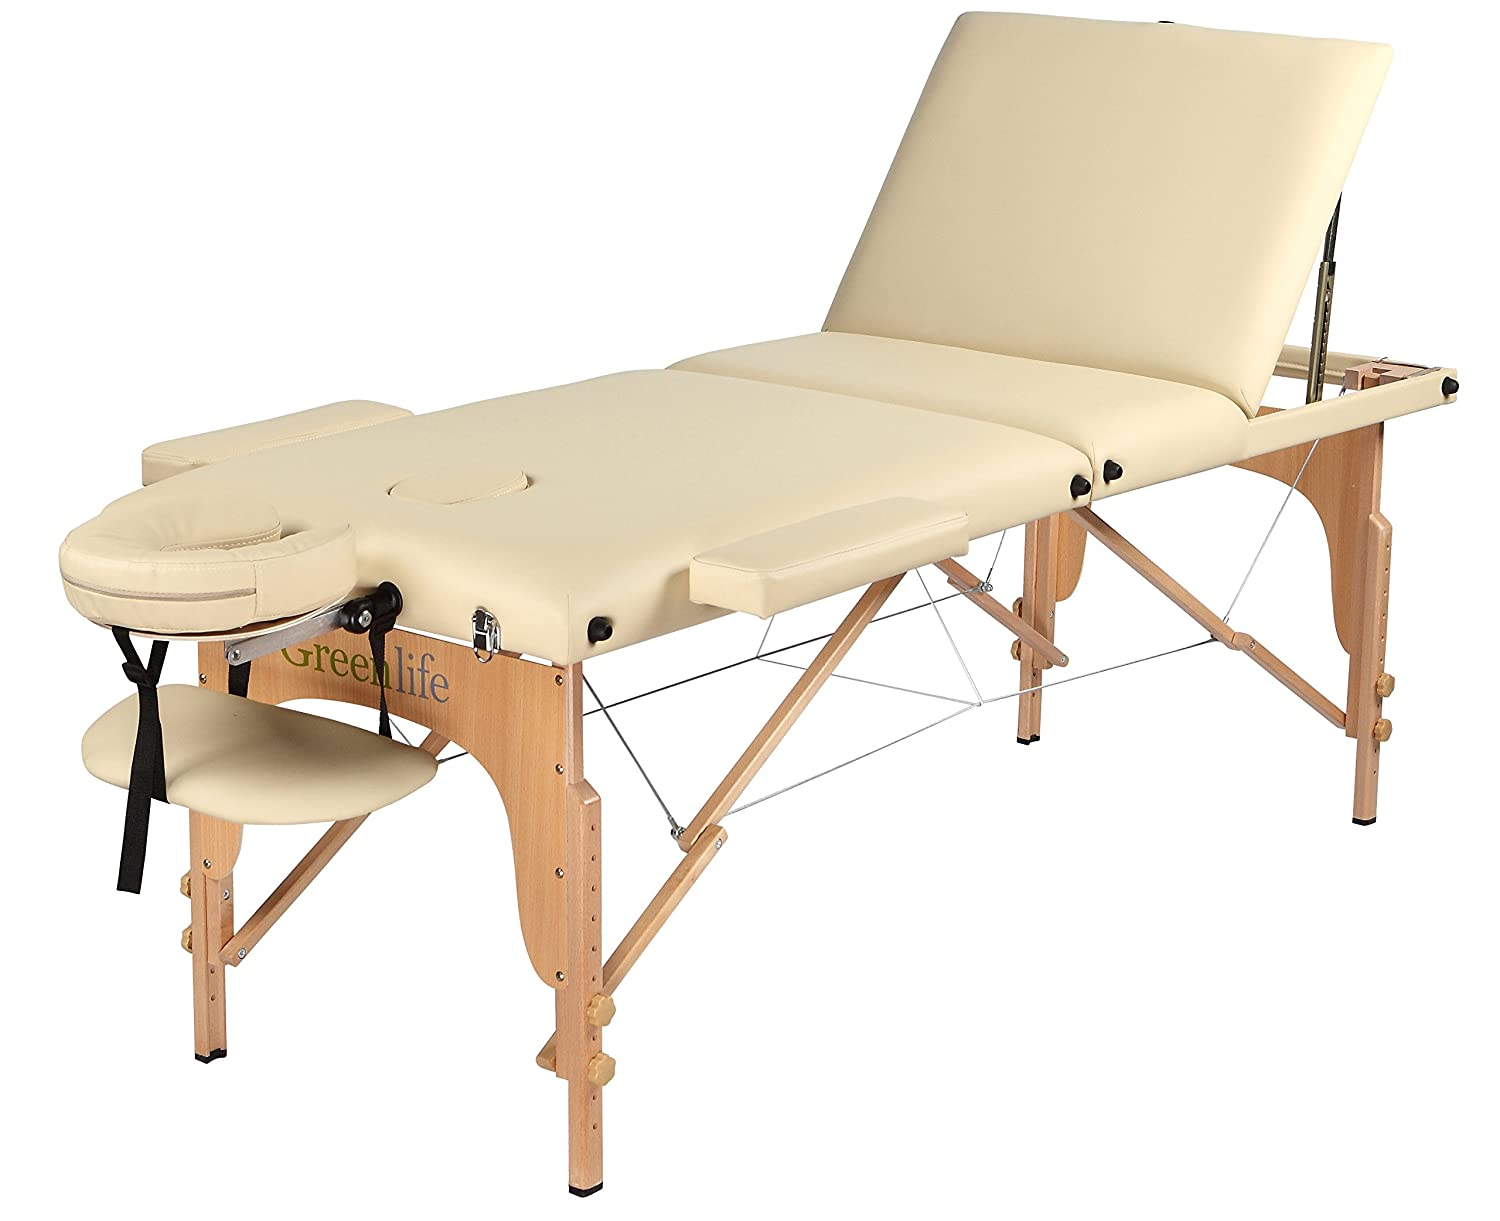 Portable Wooden 3 Fold Massage 3'' Padding Table Spa Tattoo Reiki Facial Height Adjustable (Black) with free carrying bag (Cream, 4 Padding) 4 Padding) GreenLife